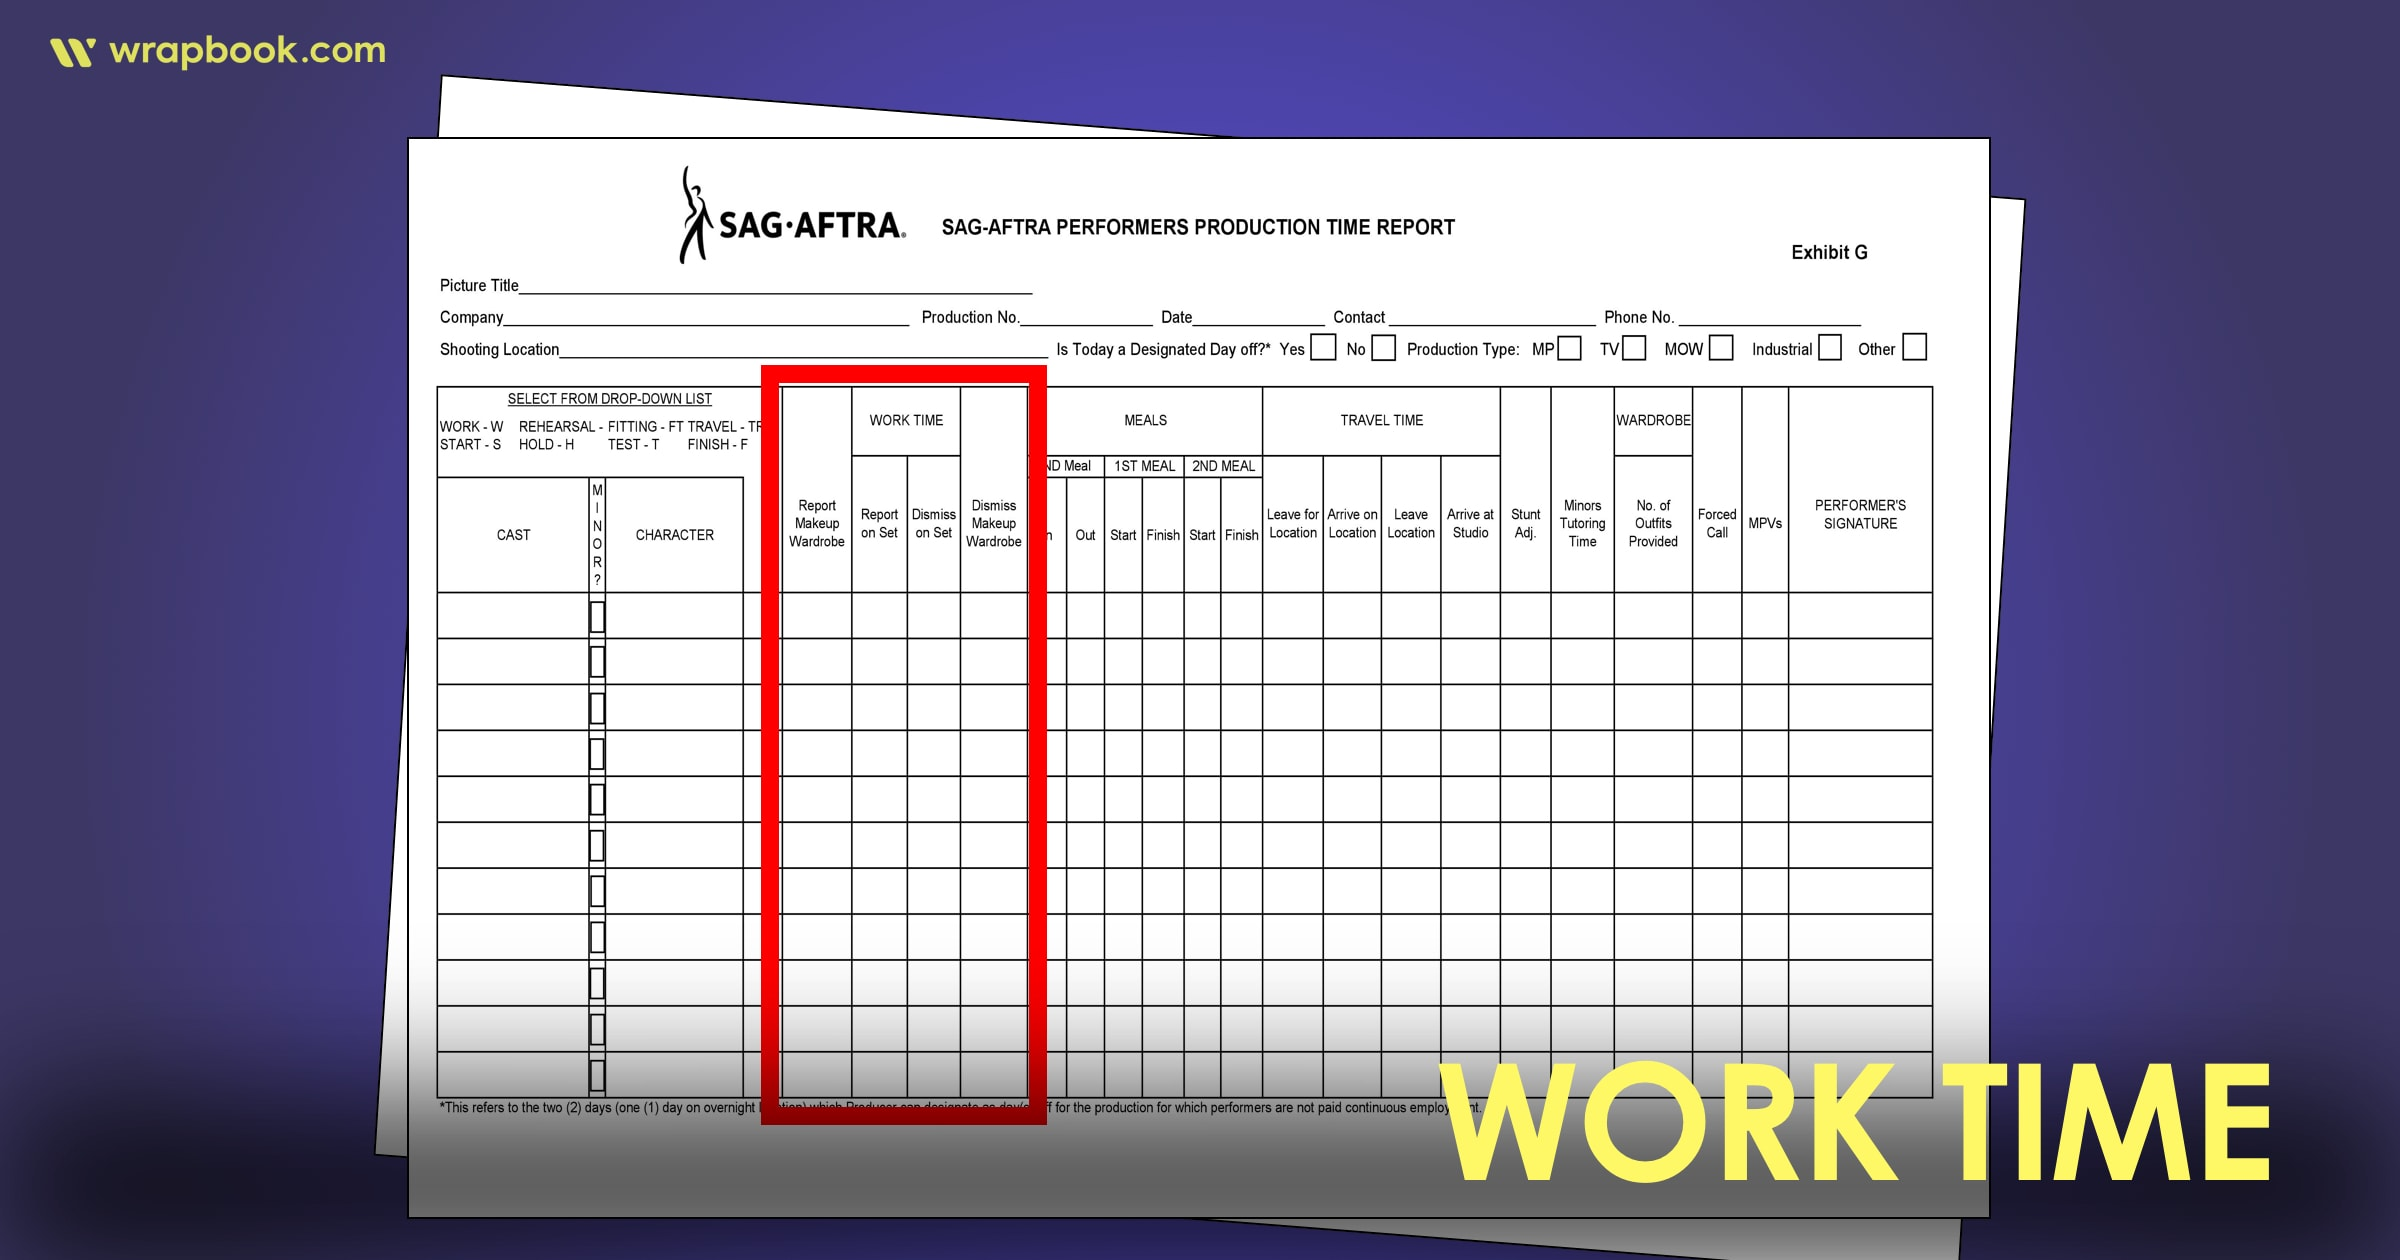 Work Time - How to Fill Out The SAG Exhibit G Form